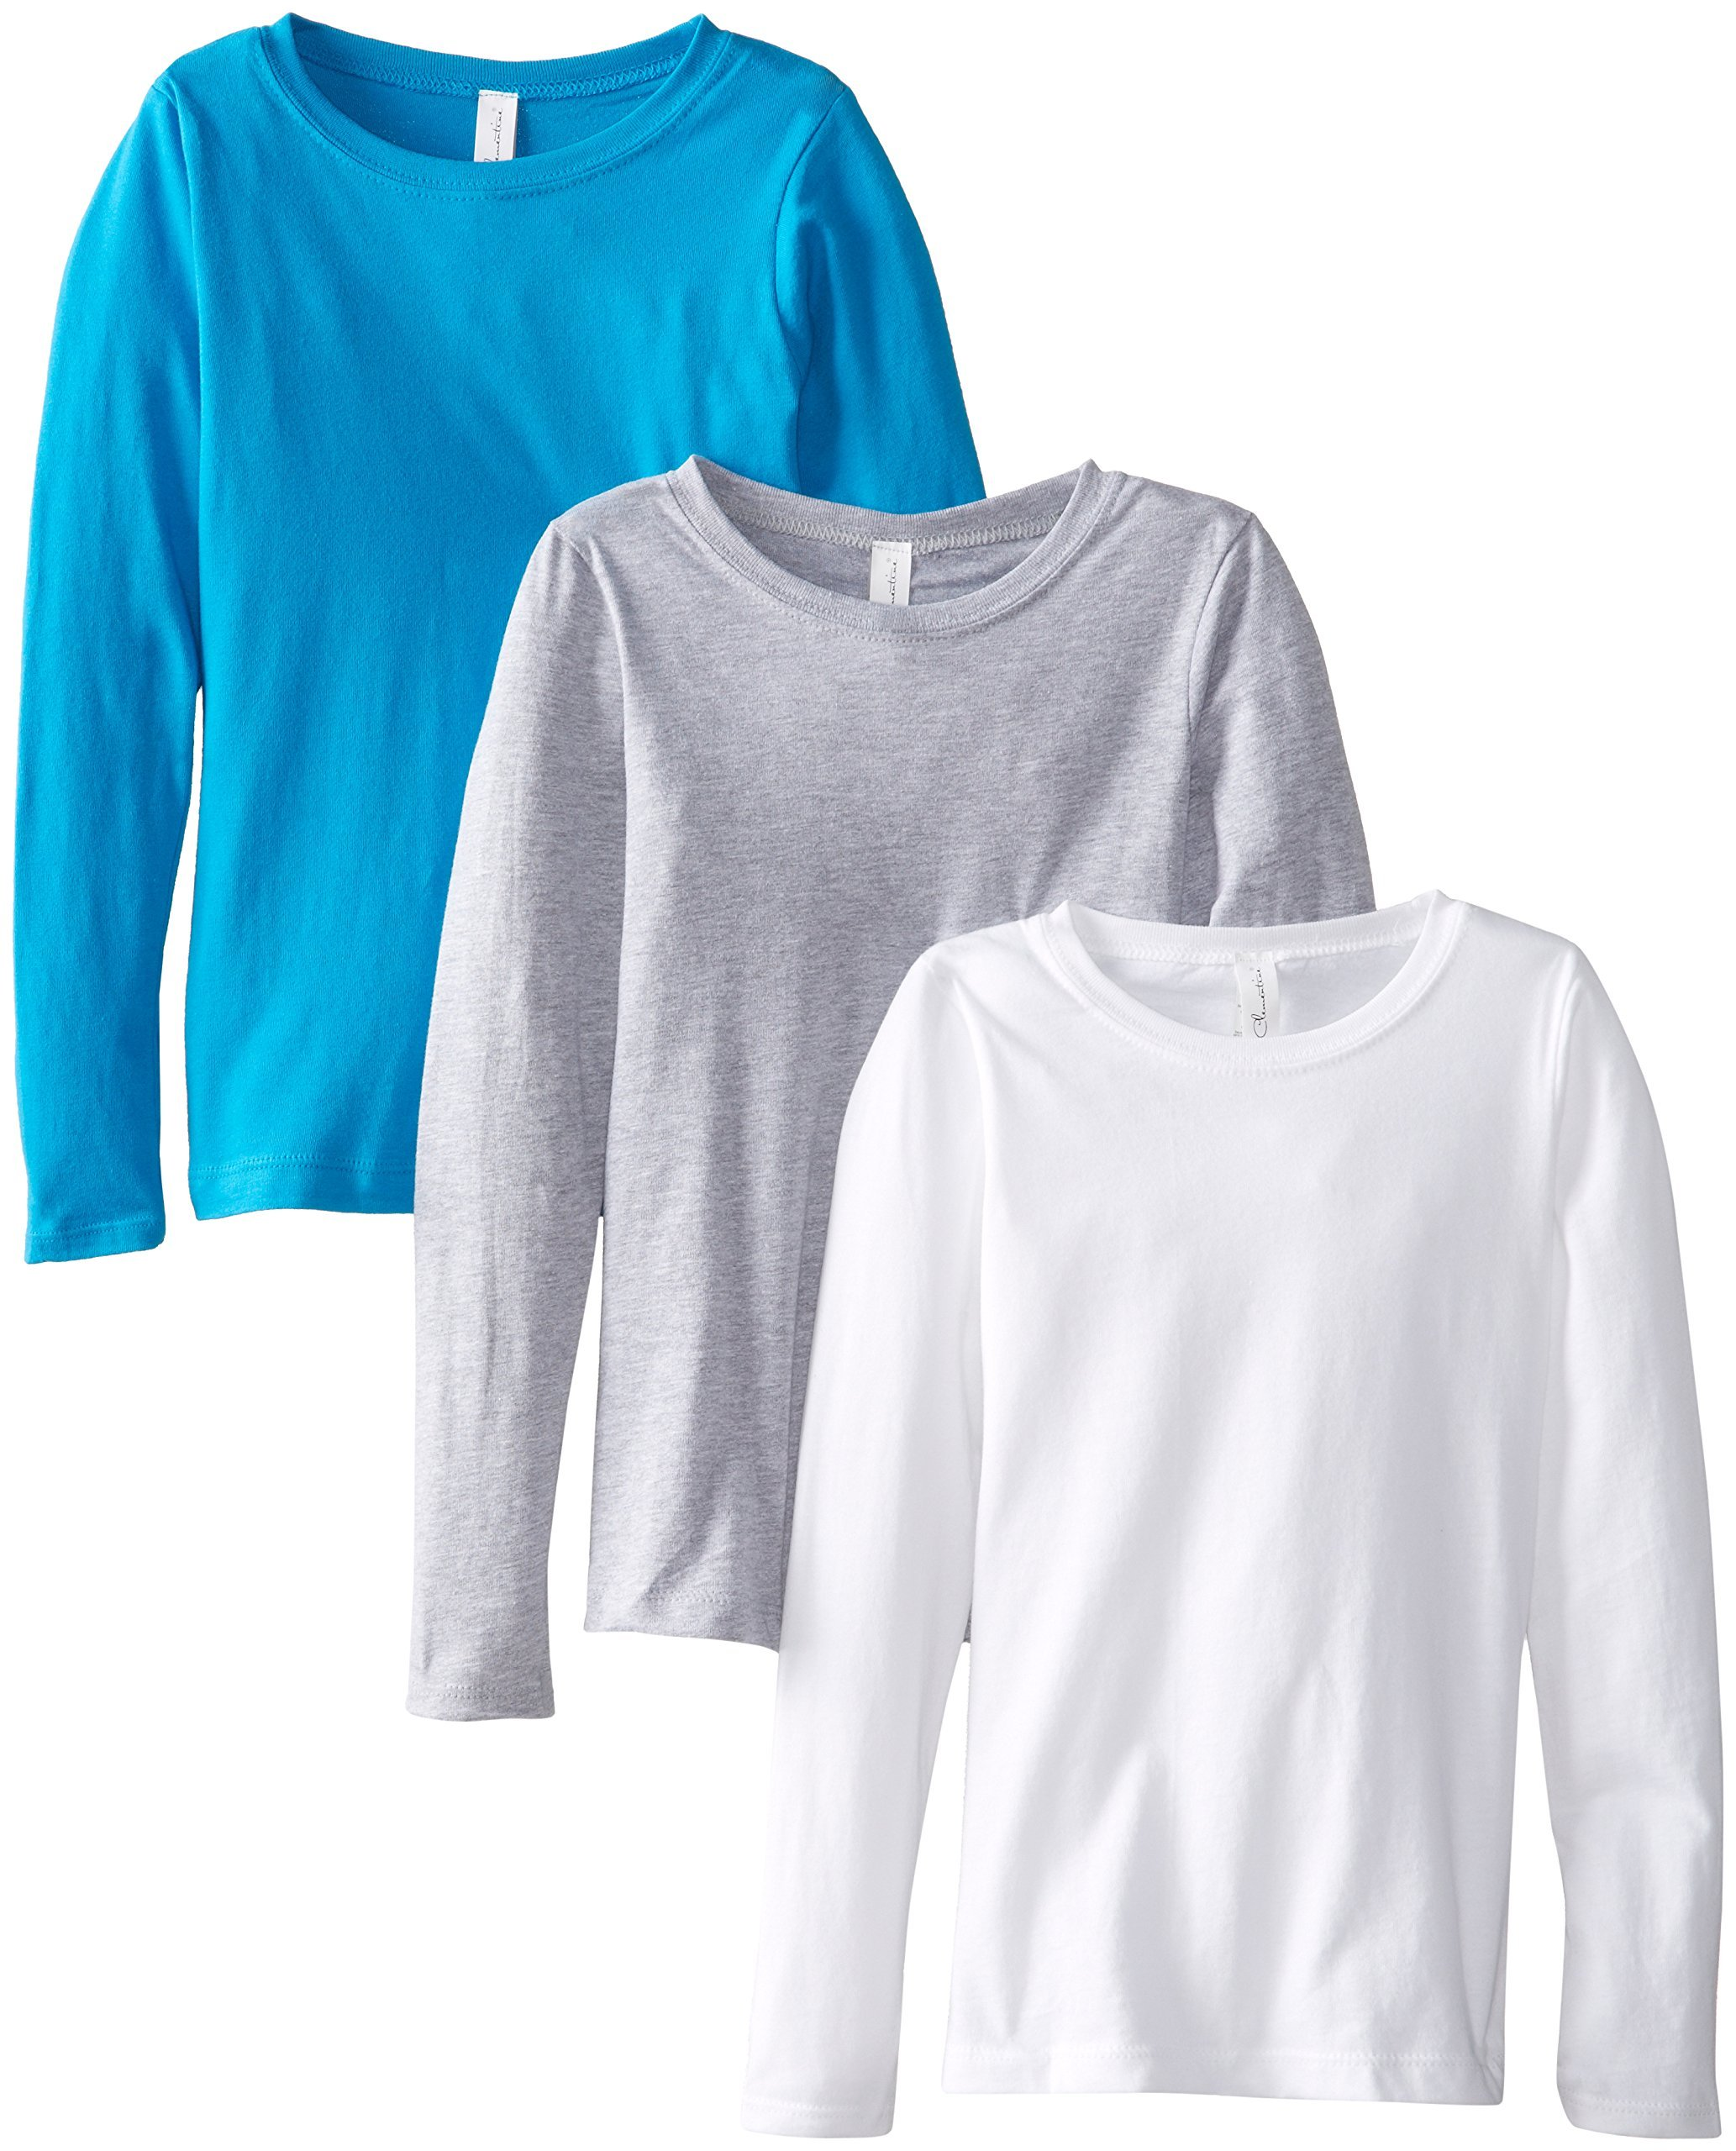 Clementine Big Girls' Everyday Long Sleeve Tee Assorted 3 Pack, White/Grey/Turquoise,Medium (7-8)